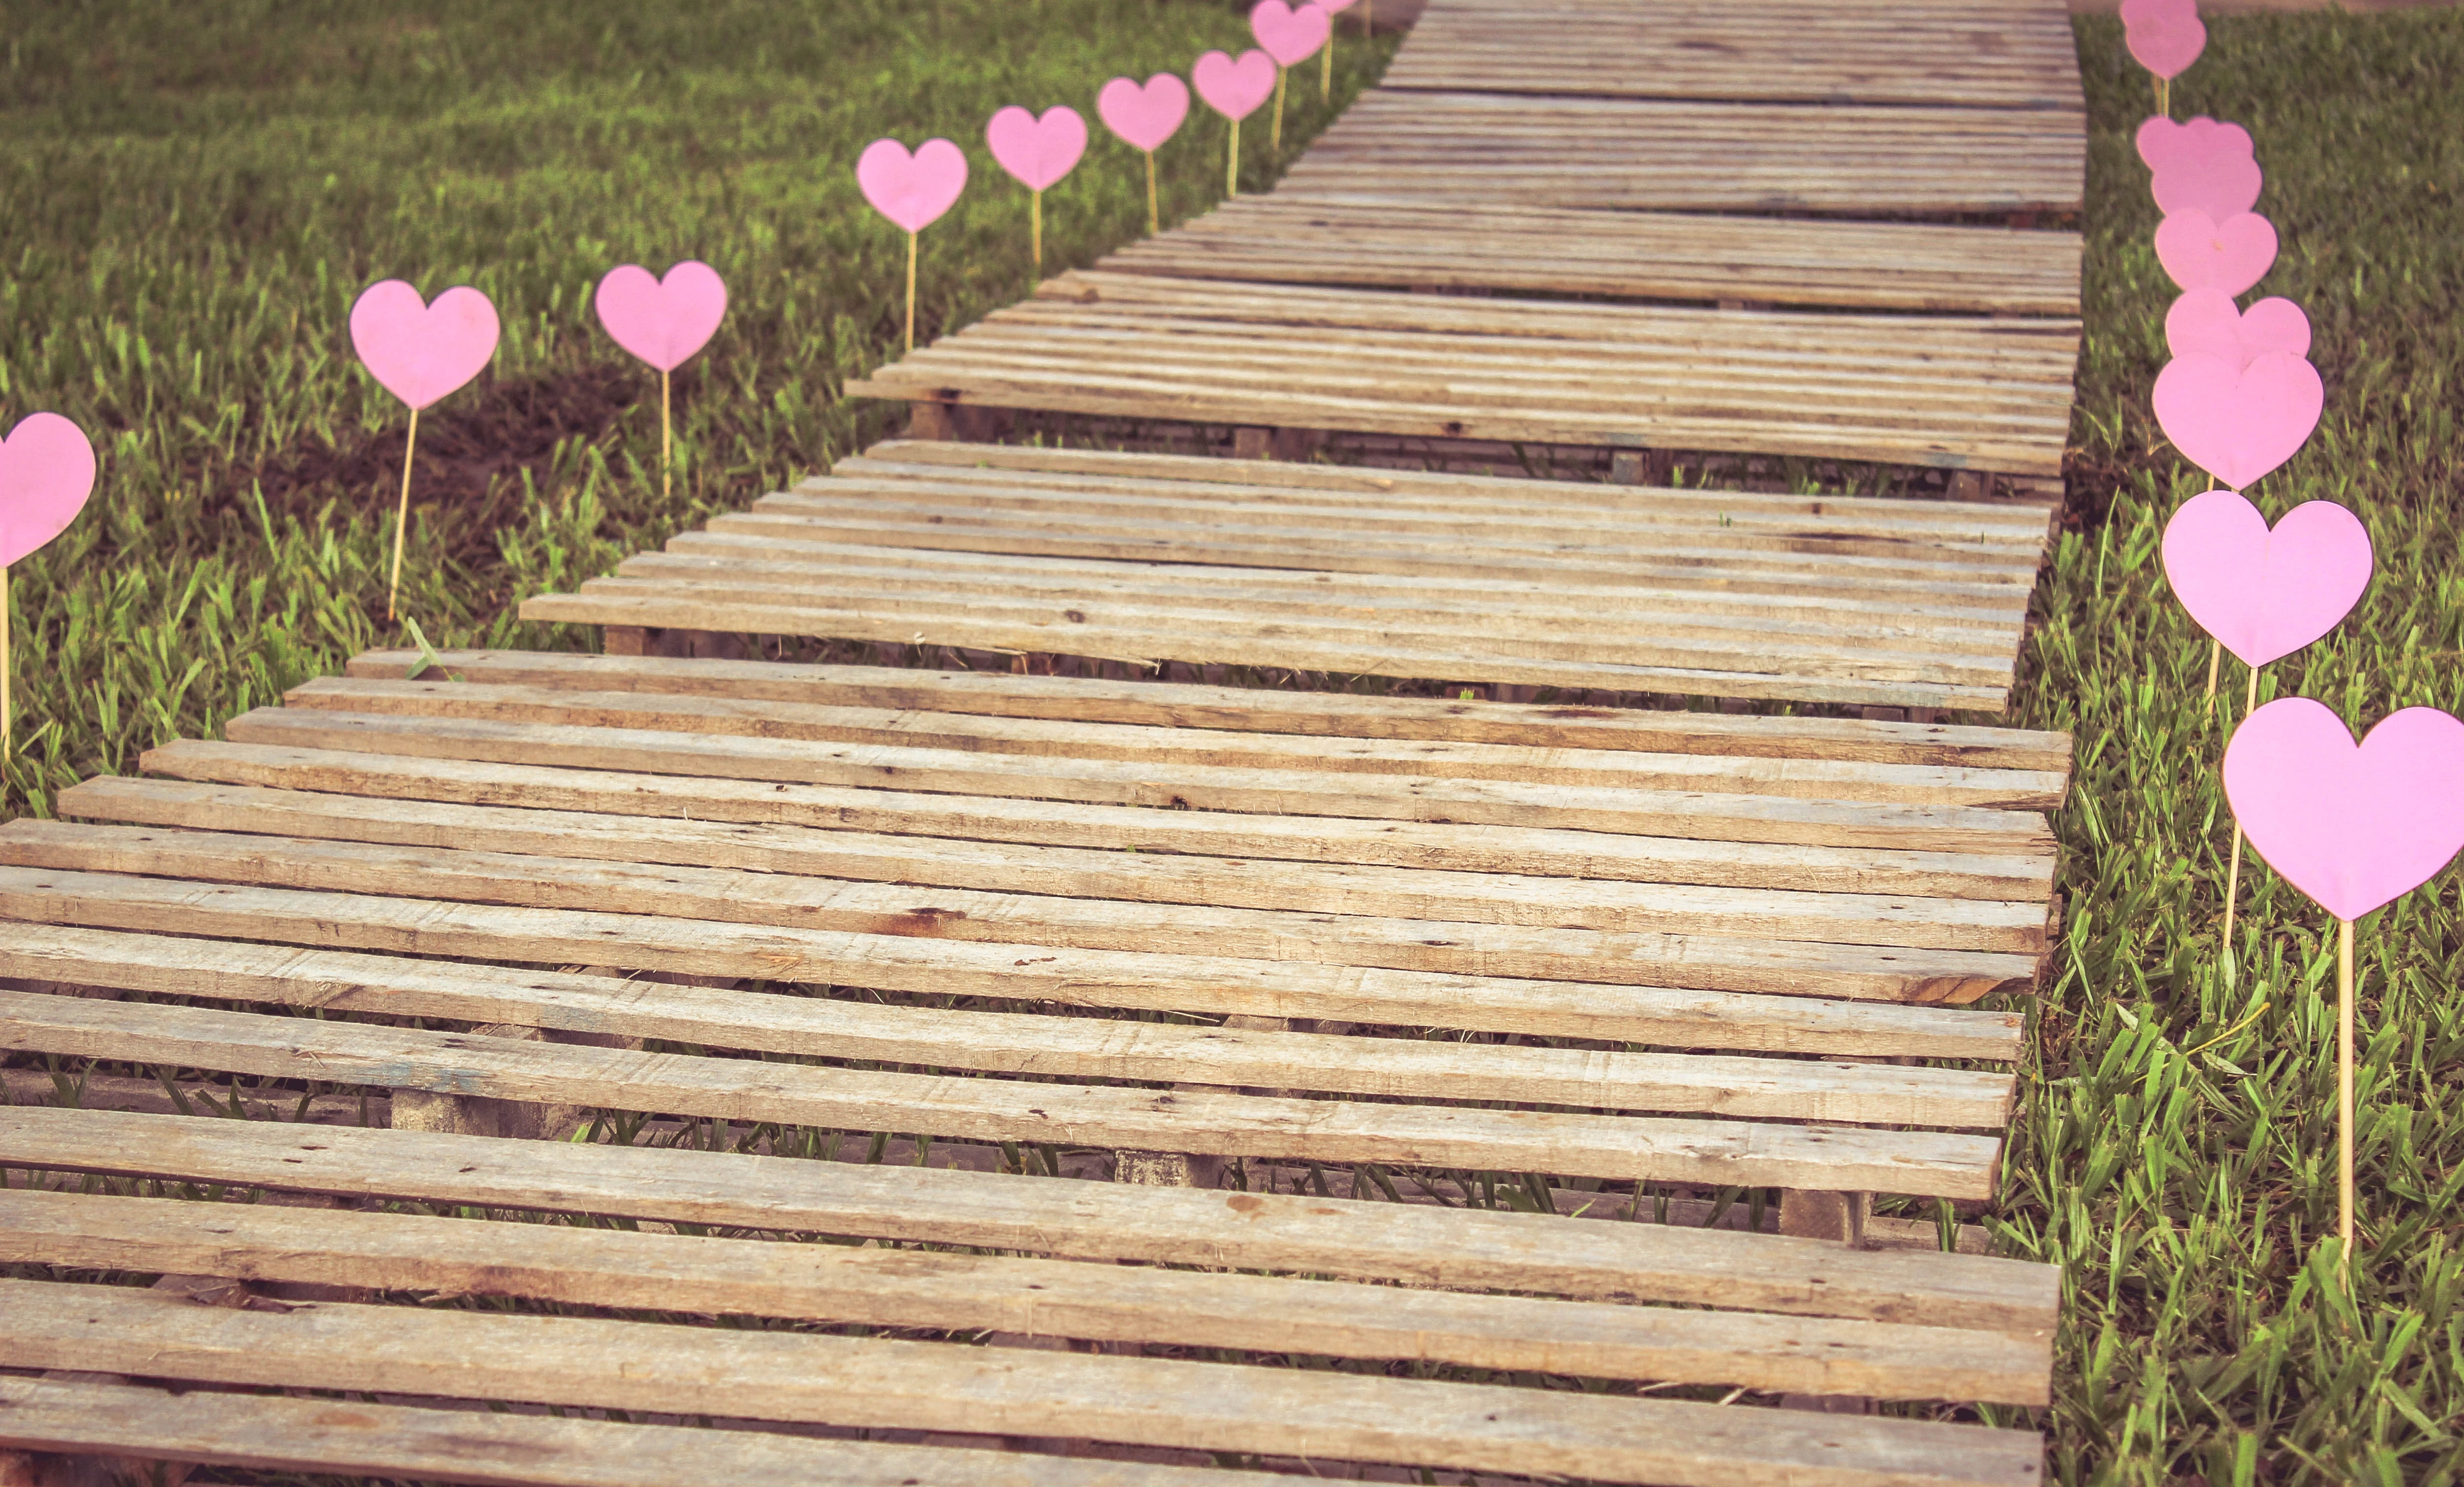 High Angle View of Plants on Wood, Decoration, Design, Hearts, Love, HQ Photo